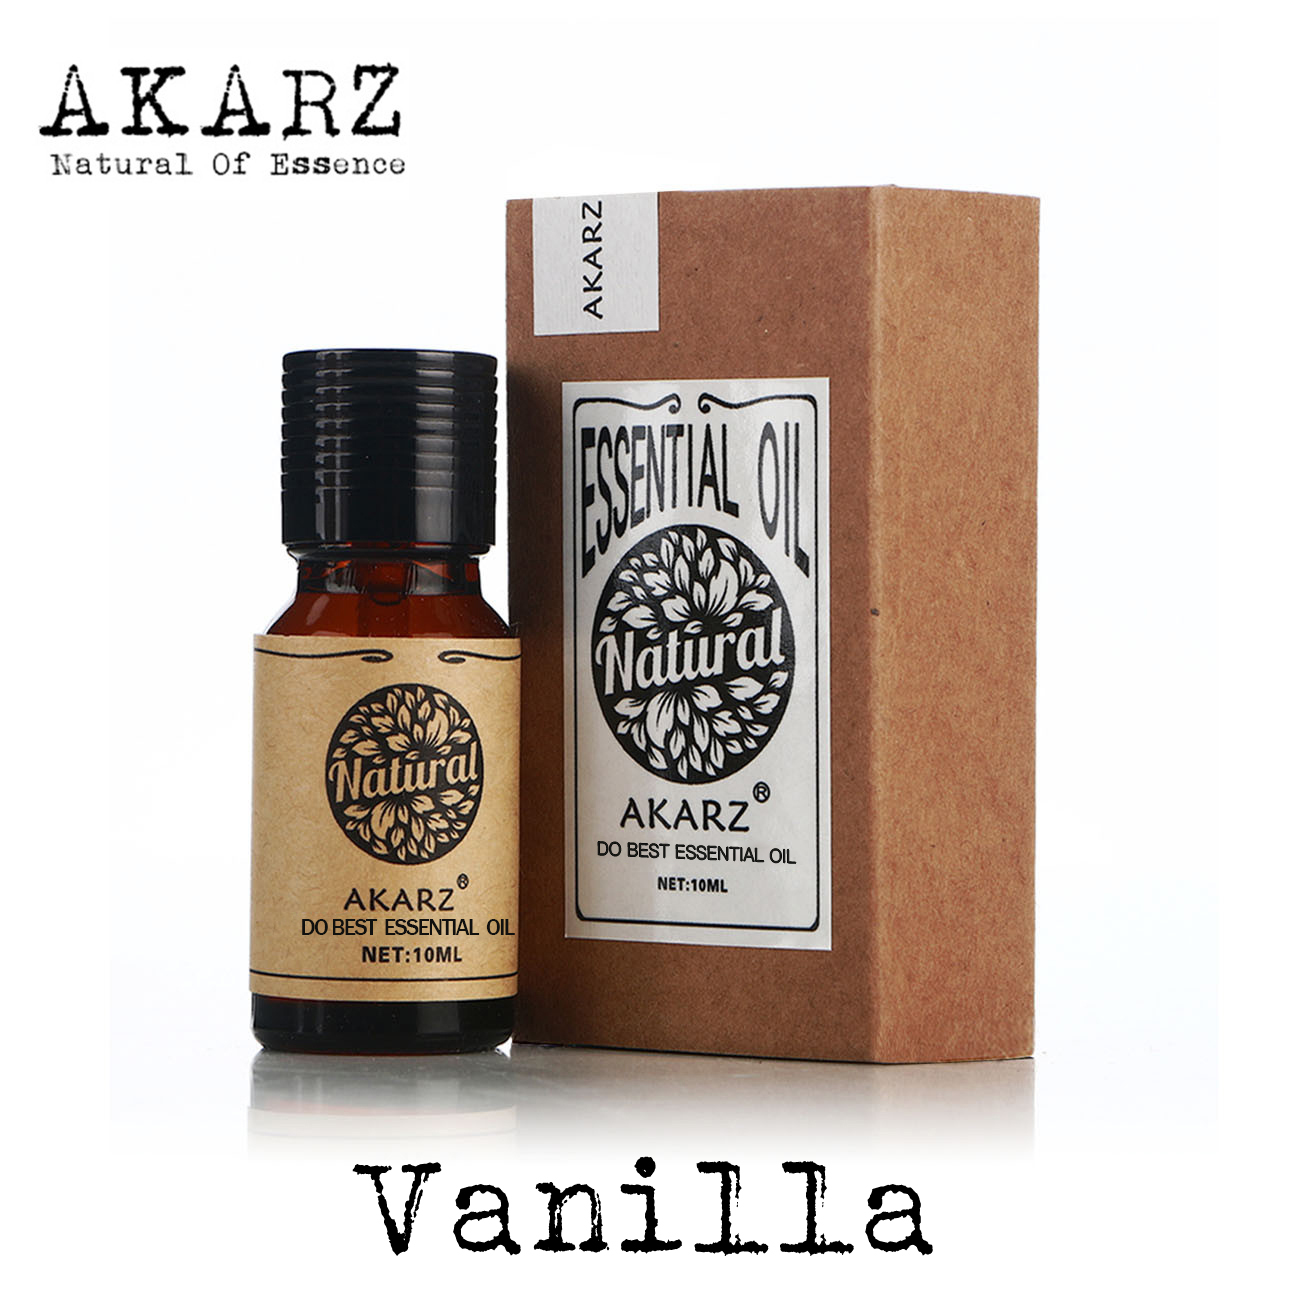 Vanilla Essential Oil AKARZ Brand Natural Oiliness Cosmetics Candle Soap Scents Making DIY Odorant Raw Material Vanilla Oil